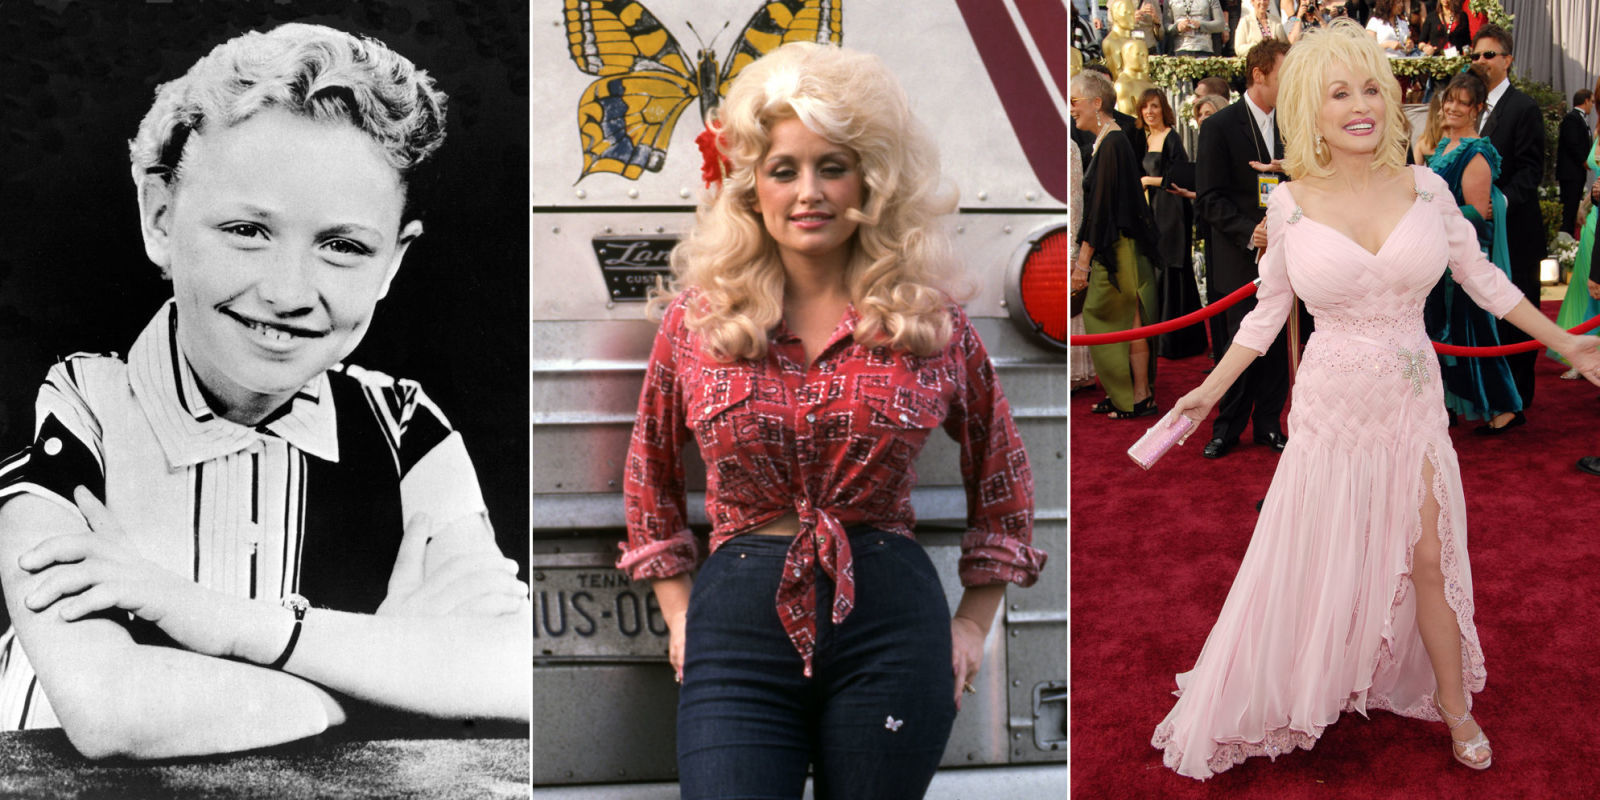 Dolly Parton S Life In Pictures Dolly Parton S 70th Birthday